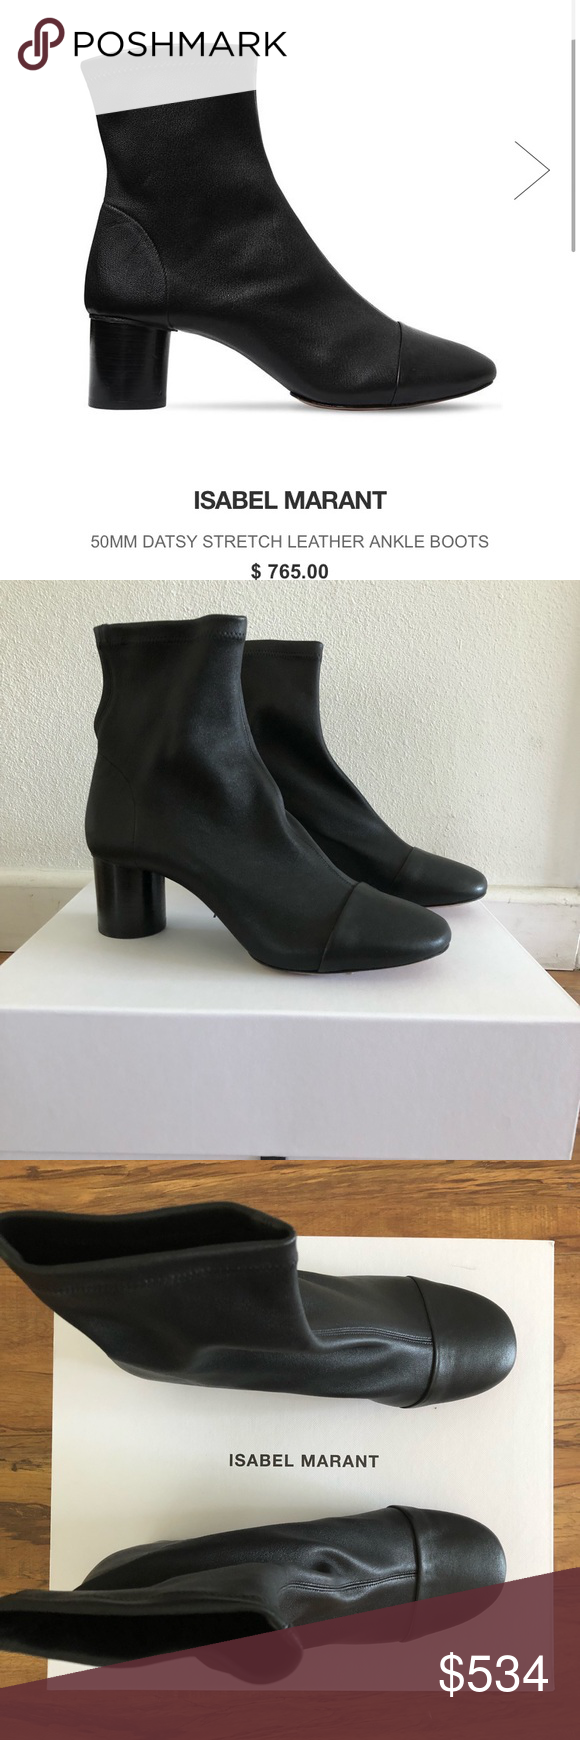 48fd20a74c8 NEW Isabel Marant Datsy Leather Boots Booties Brand New with Box!! Just  received from